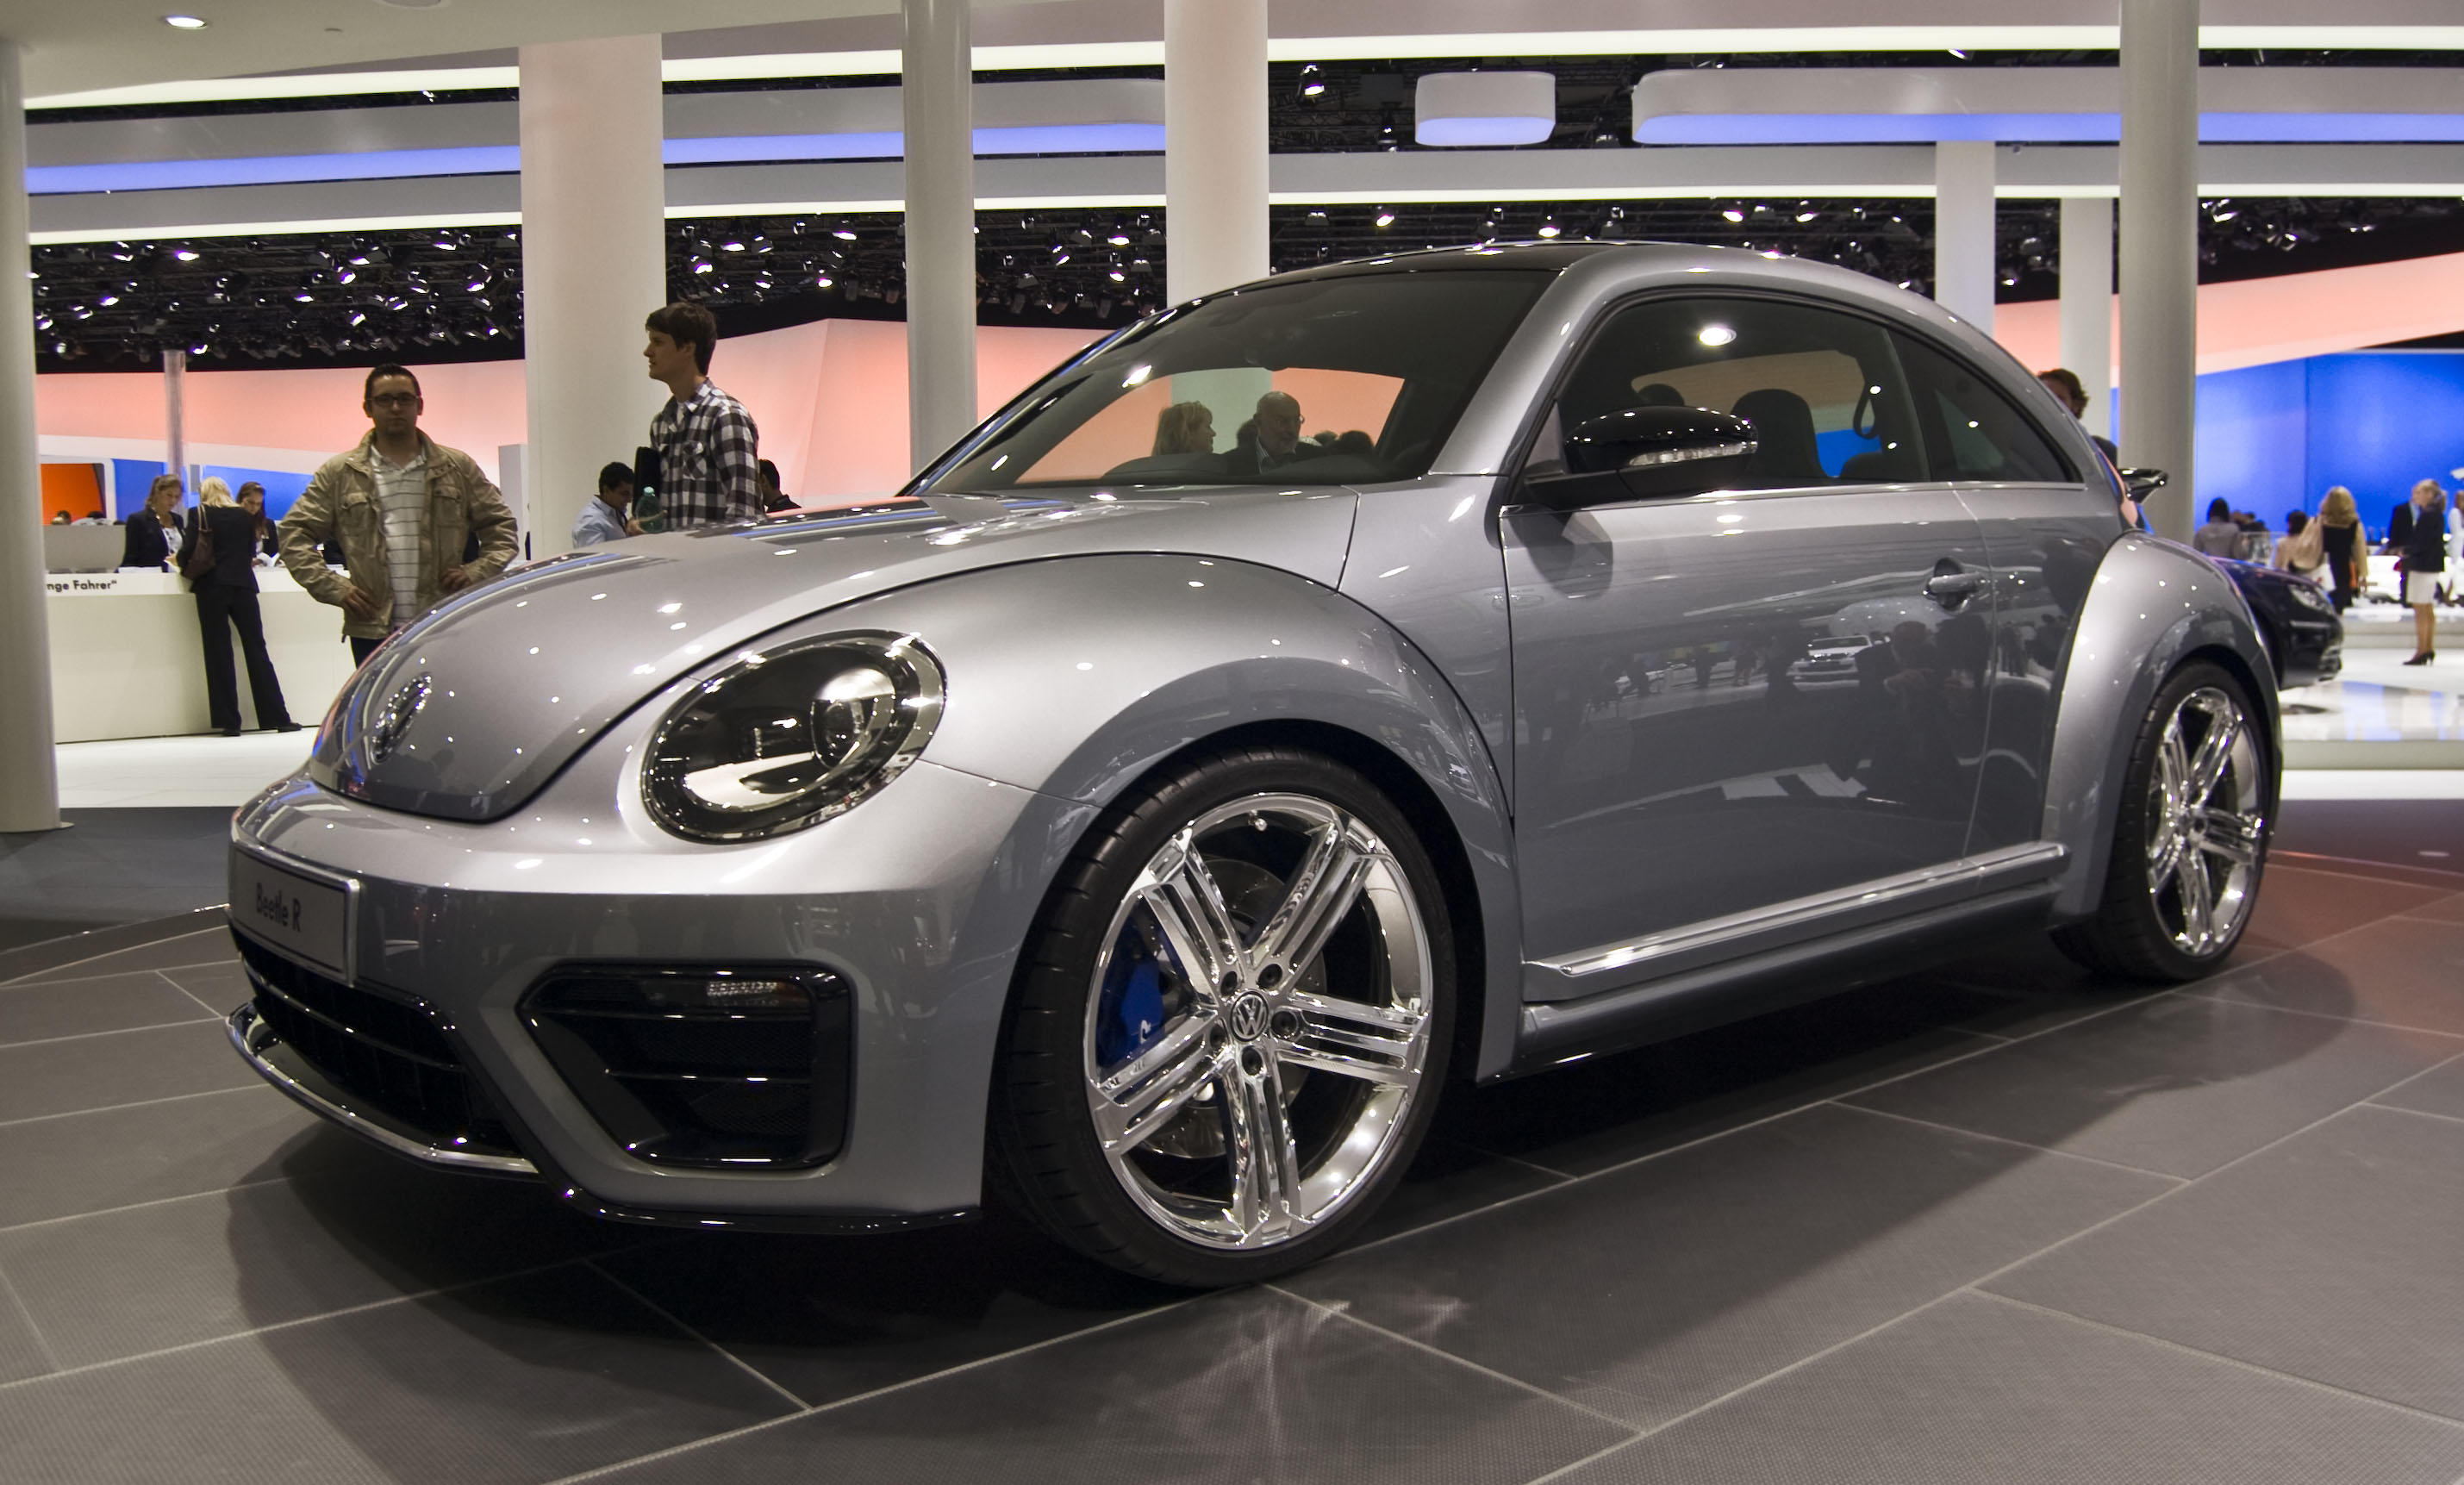 2011 volkswagen beetle r concept images pictures and videos. Black Bedroom Furniture Sets. Home Design Ideas